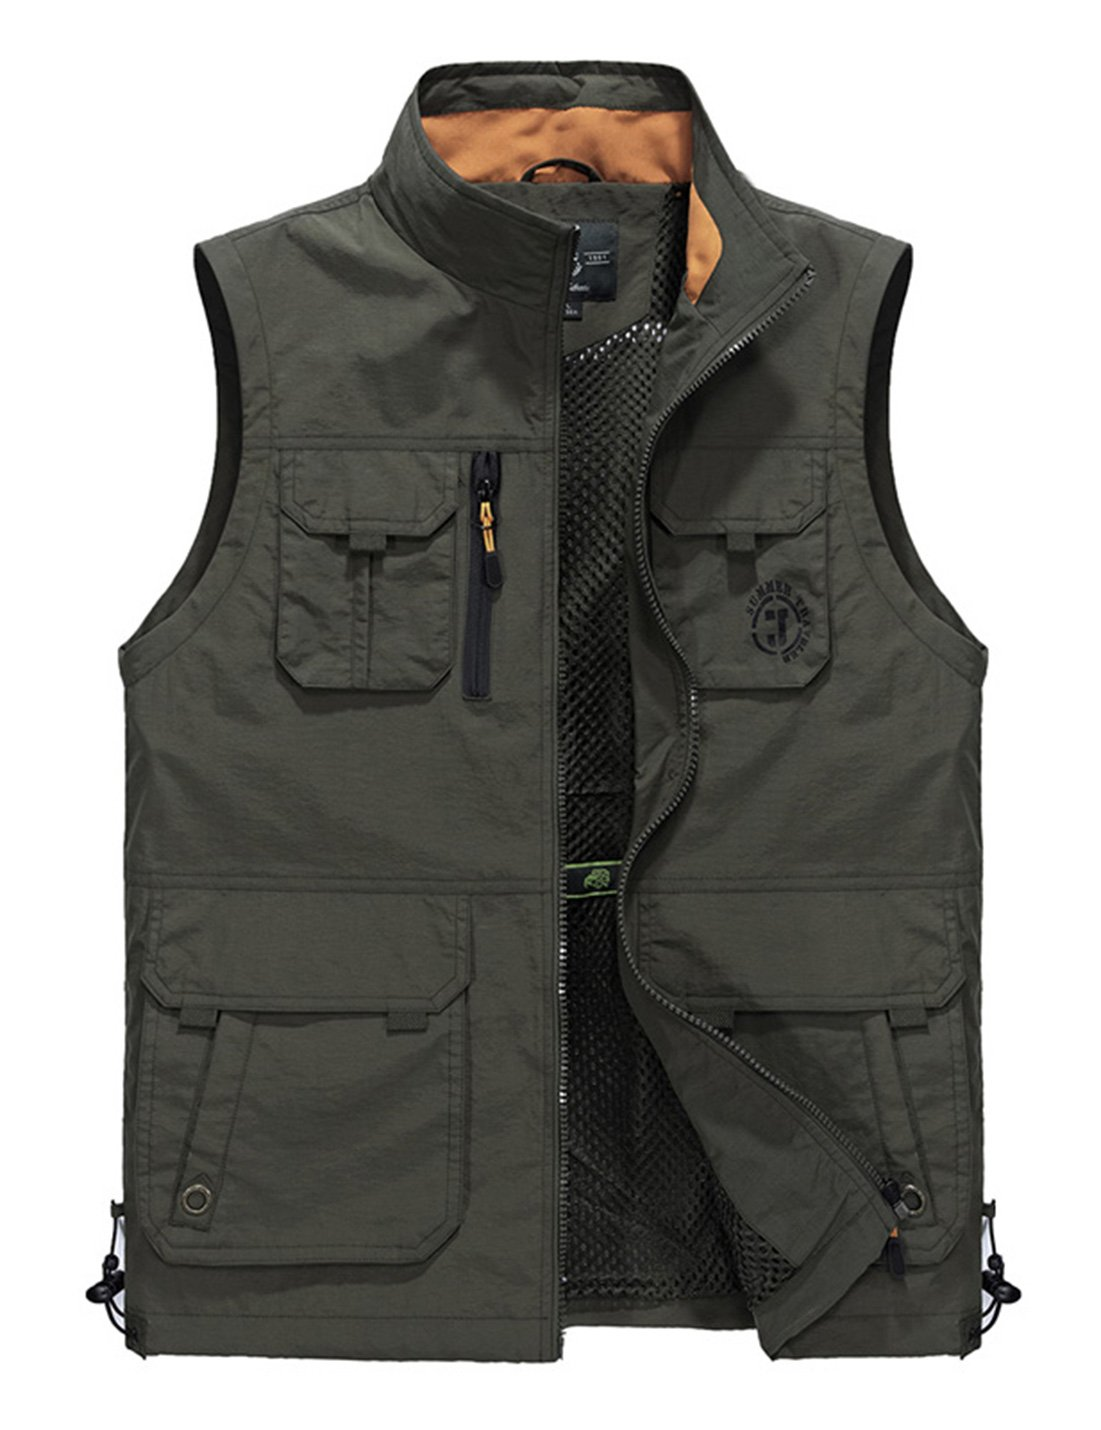 Gihuo Men's Utility Outdoor Multi Pockets Fishing Photo Journalist Sports Vest (Large, Style2-Army Green) by Gihuo